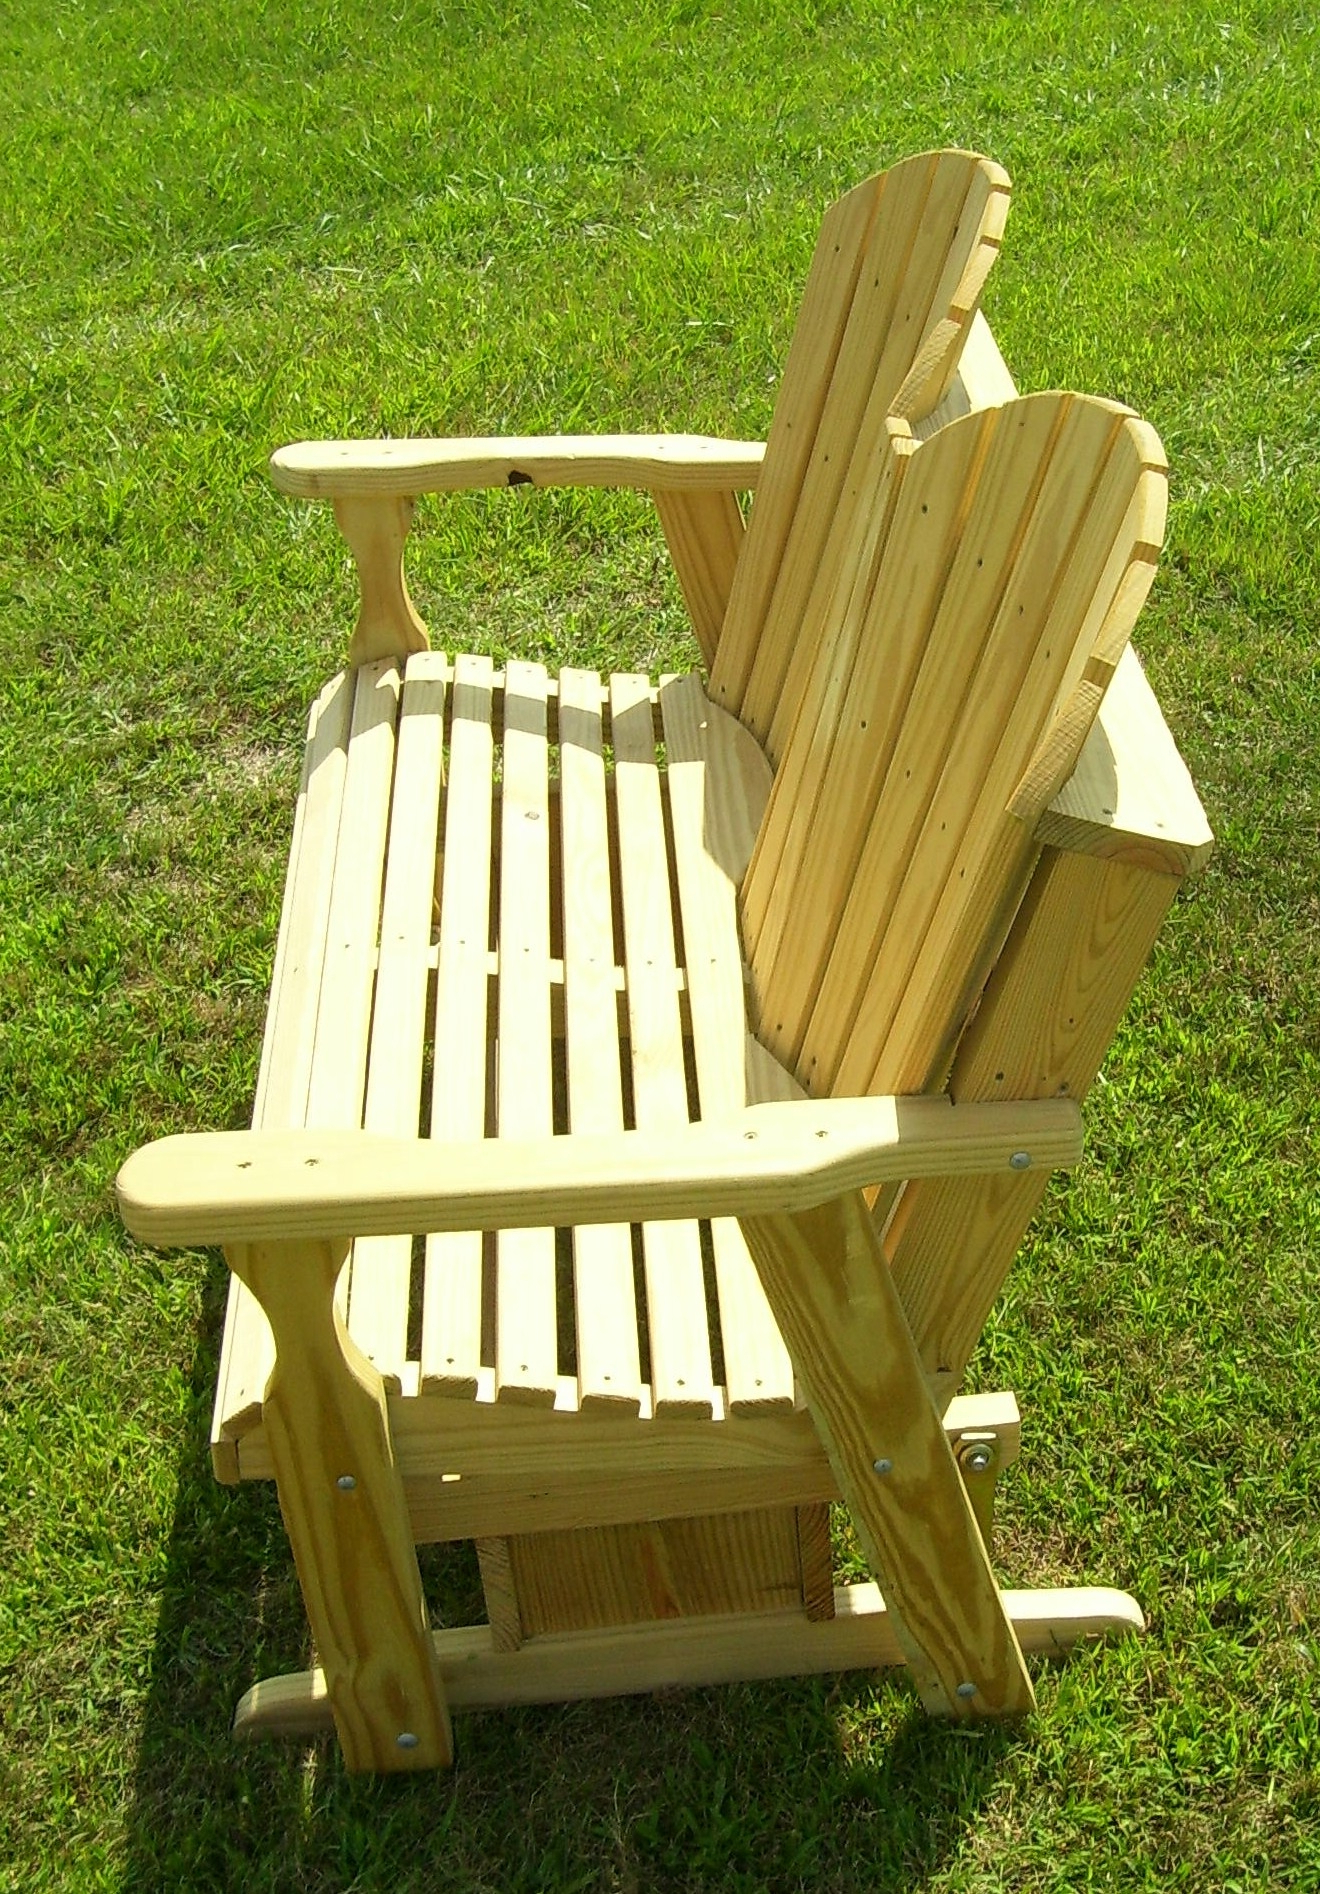 Widely Used Hardwood Porch Glider Benches Intended For Wood Porch Glider Plans (View 27 of 30)